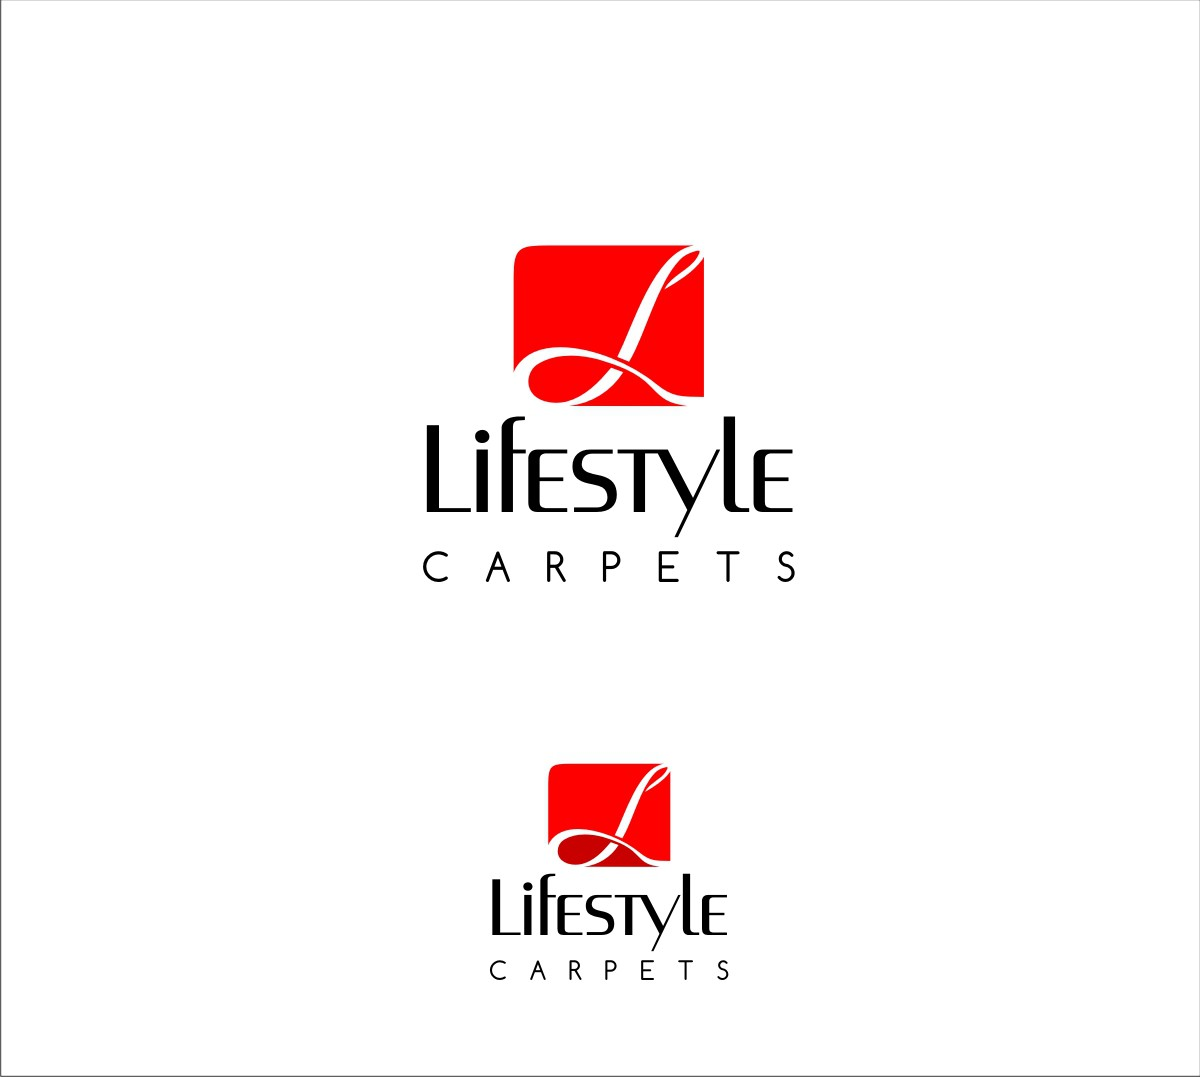 New logo wanted for Lifestyle Carpet